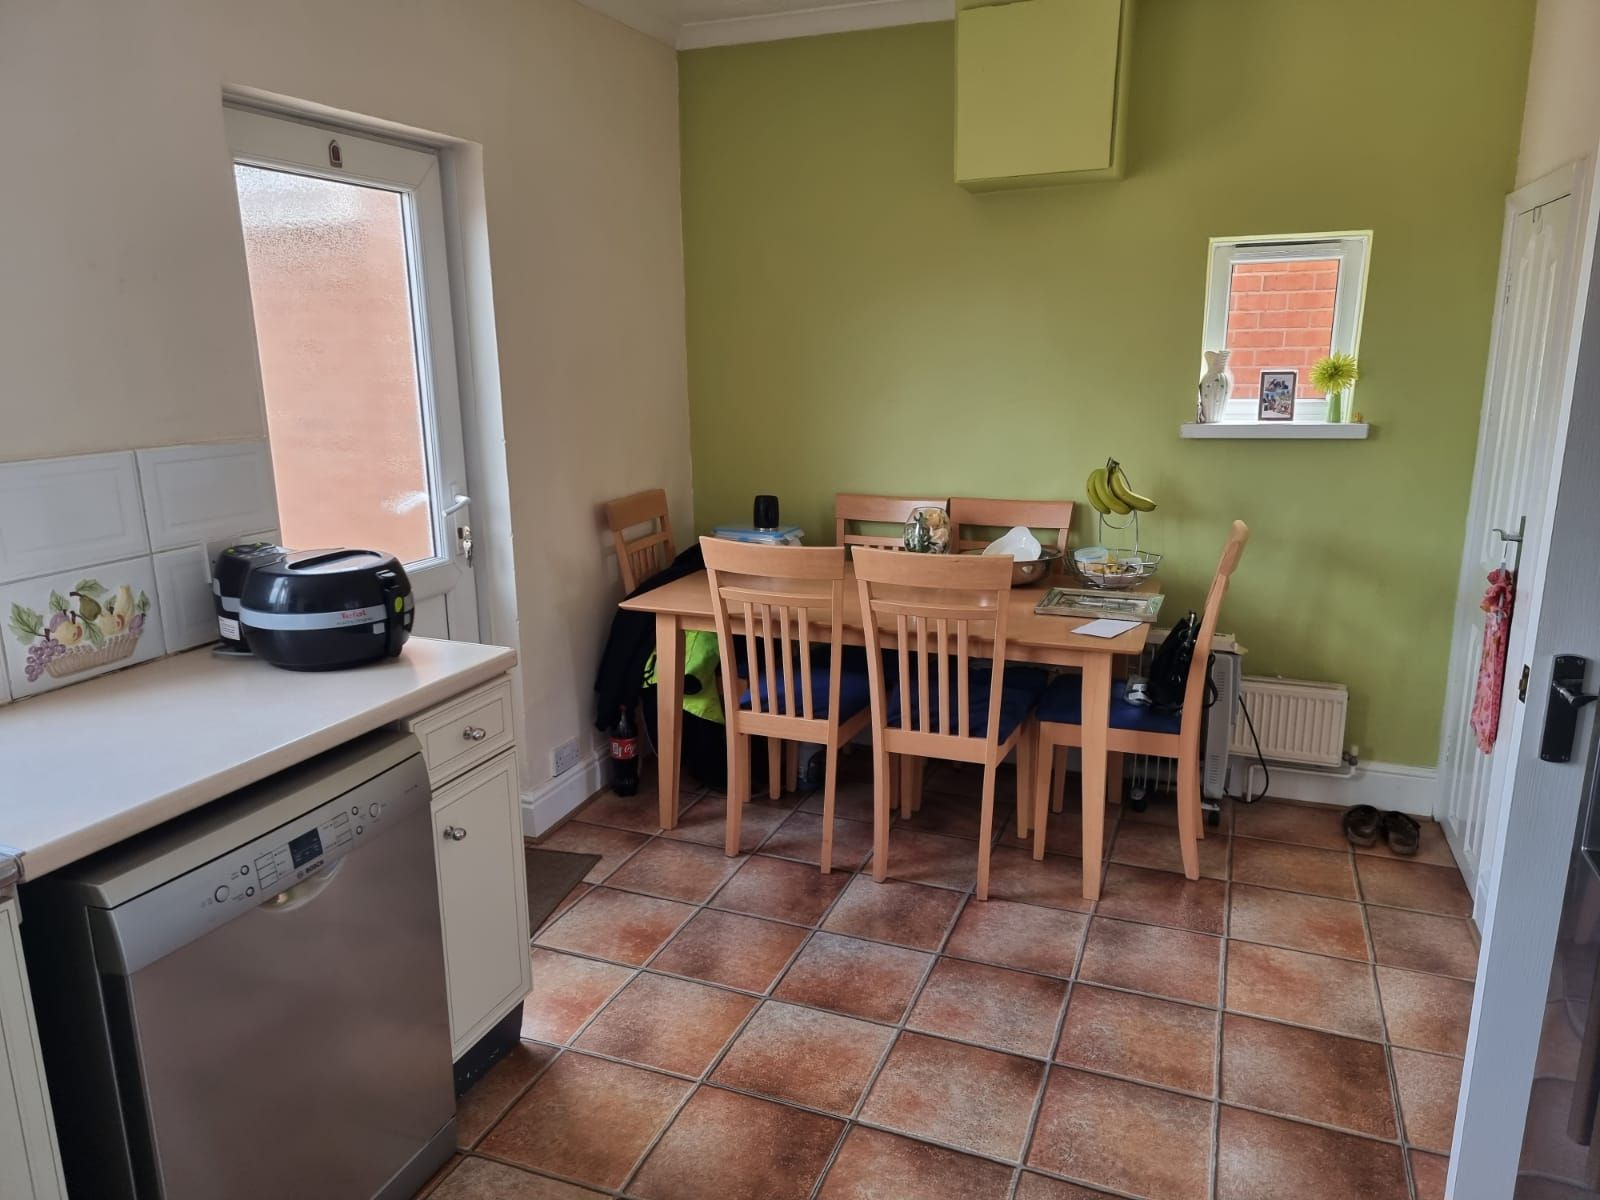 3 bedroom semi-detached house SSTC in Leicester - Photograph 6.